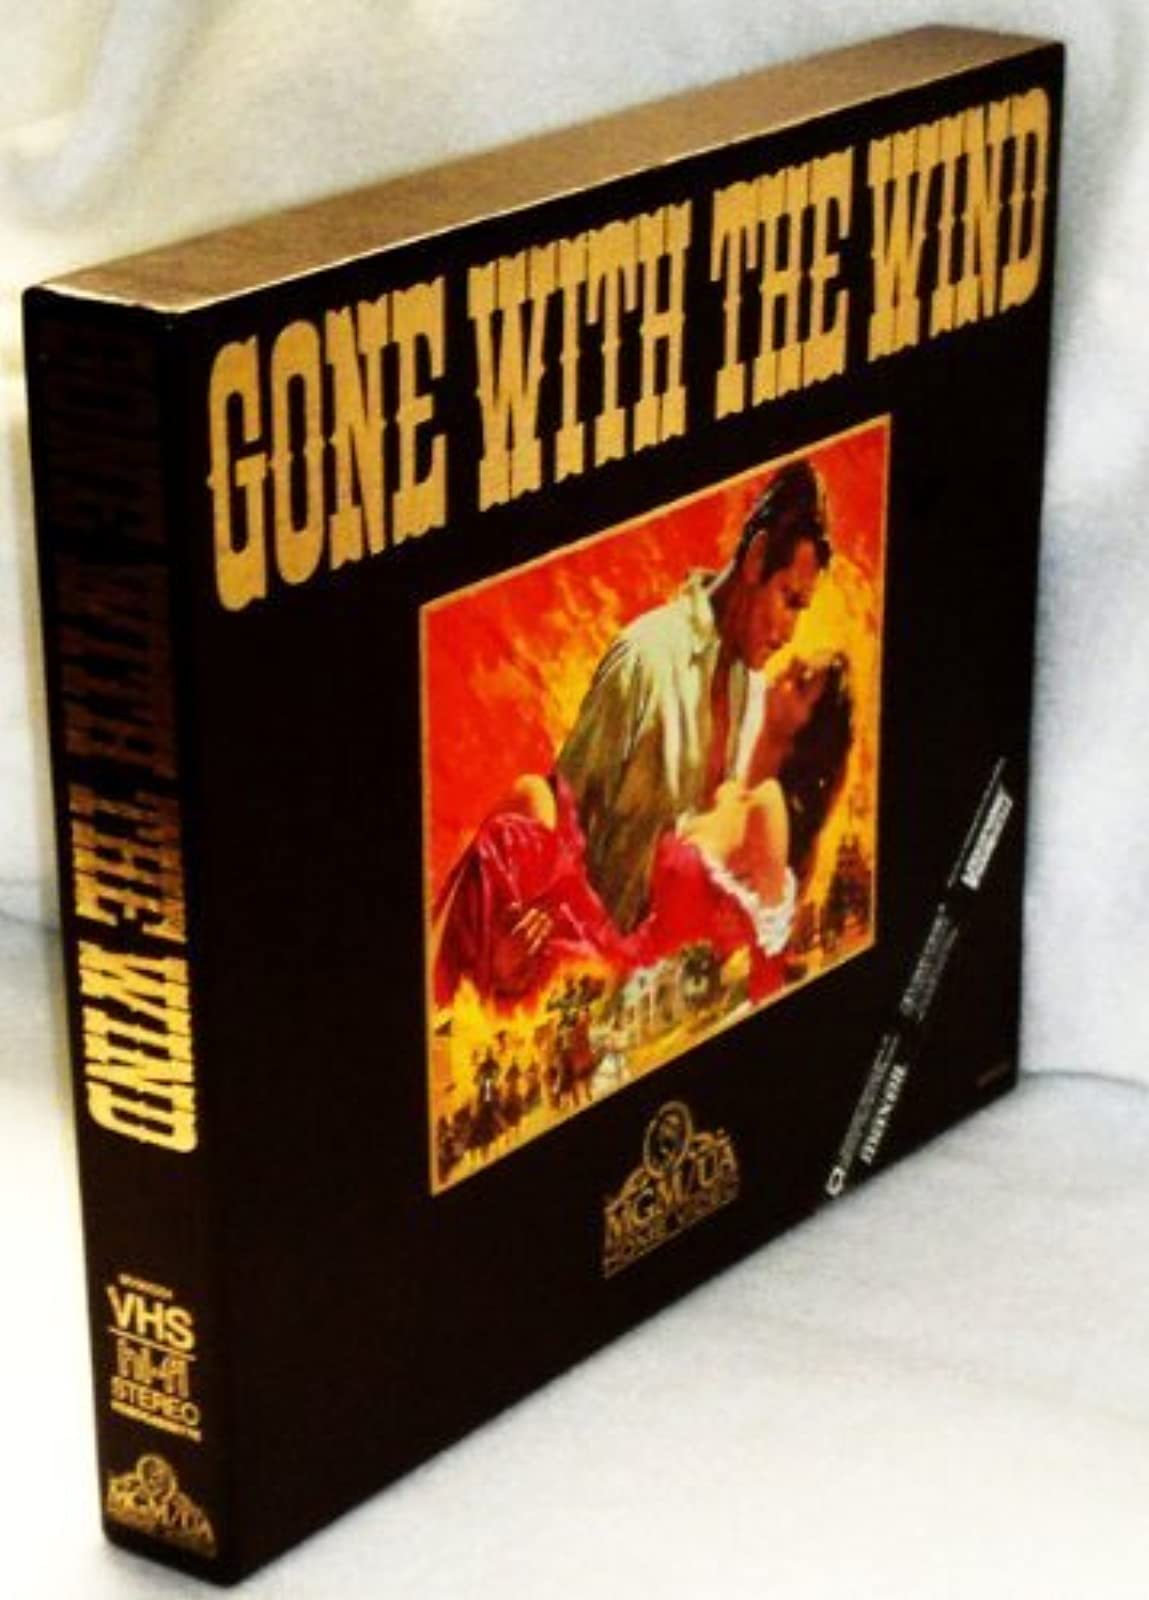 Gone With The Wind 2 Deluxe Set With Souvenir Program By Mgm/ua On VHS